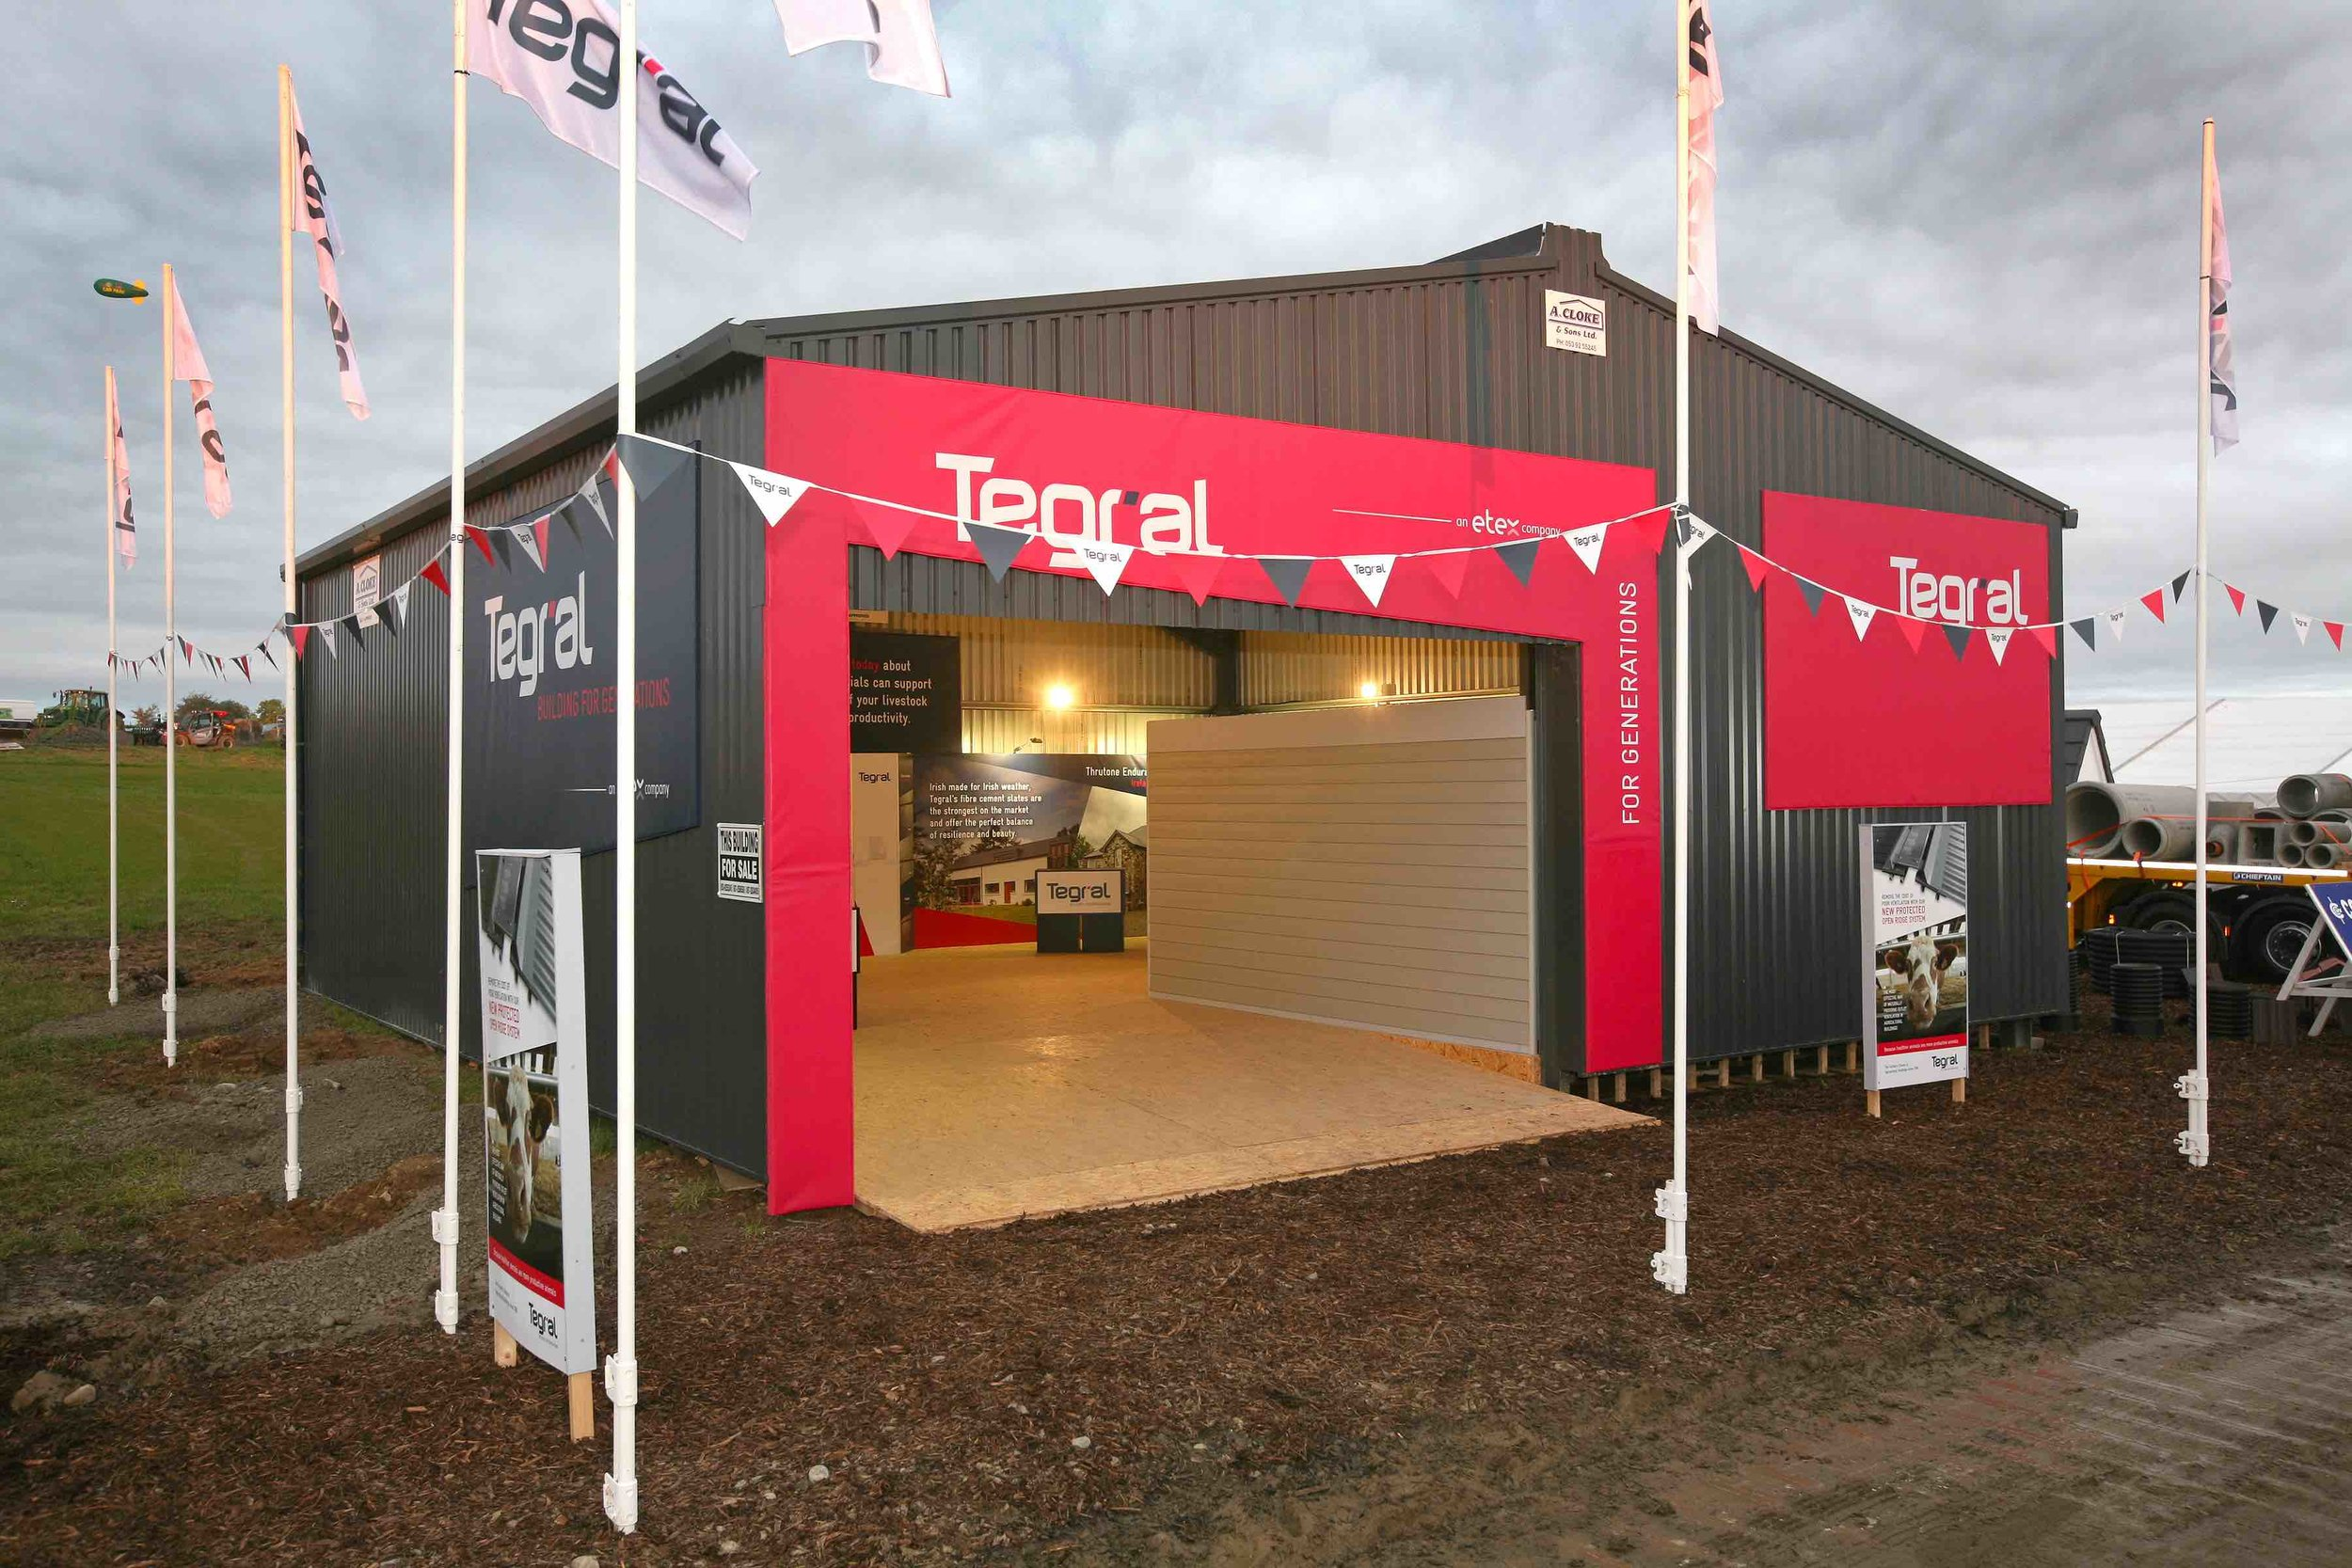 Tegral Exhibition Stand at The National Ploughing Championships 2017